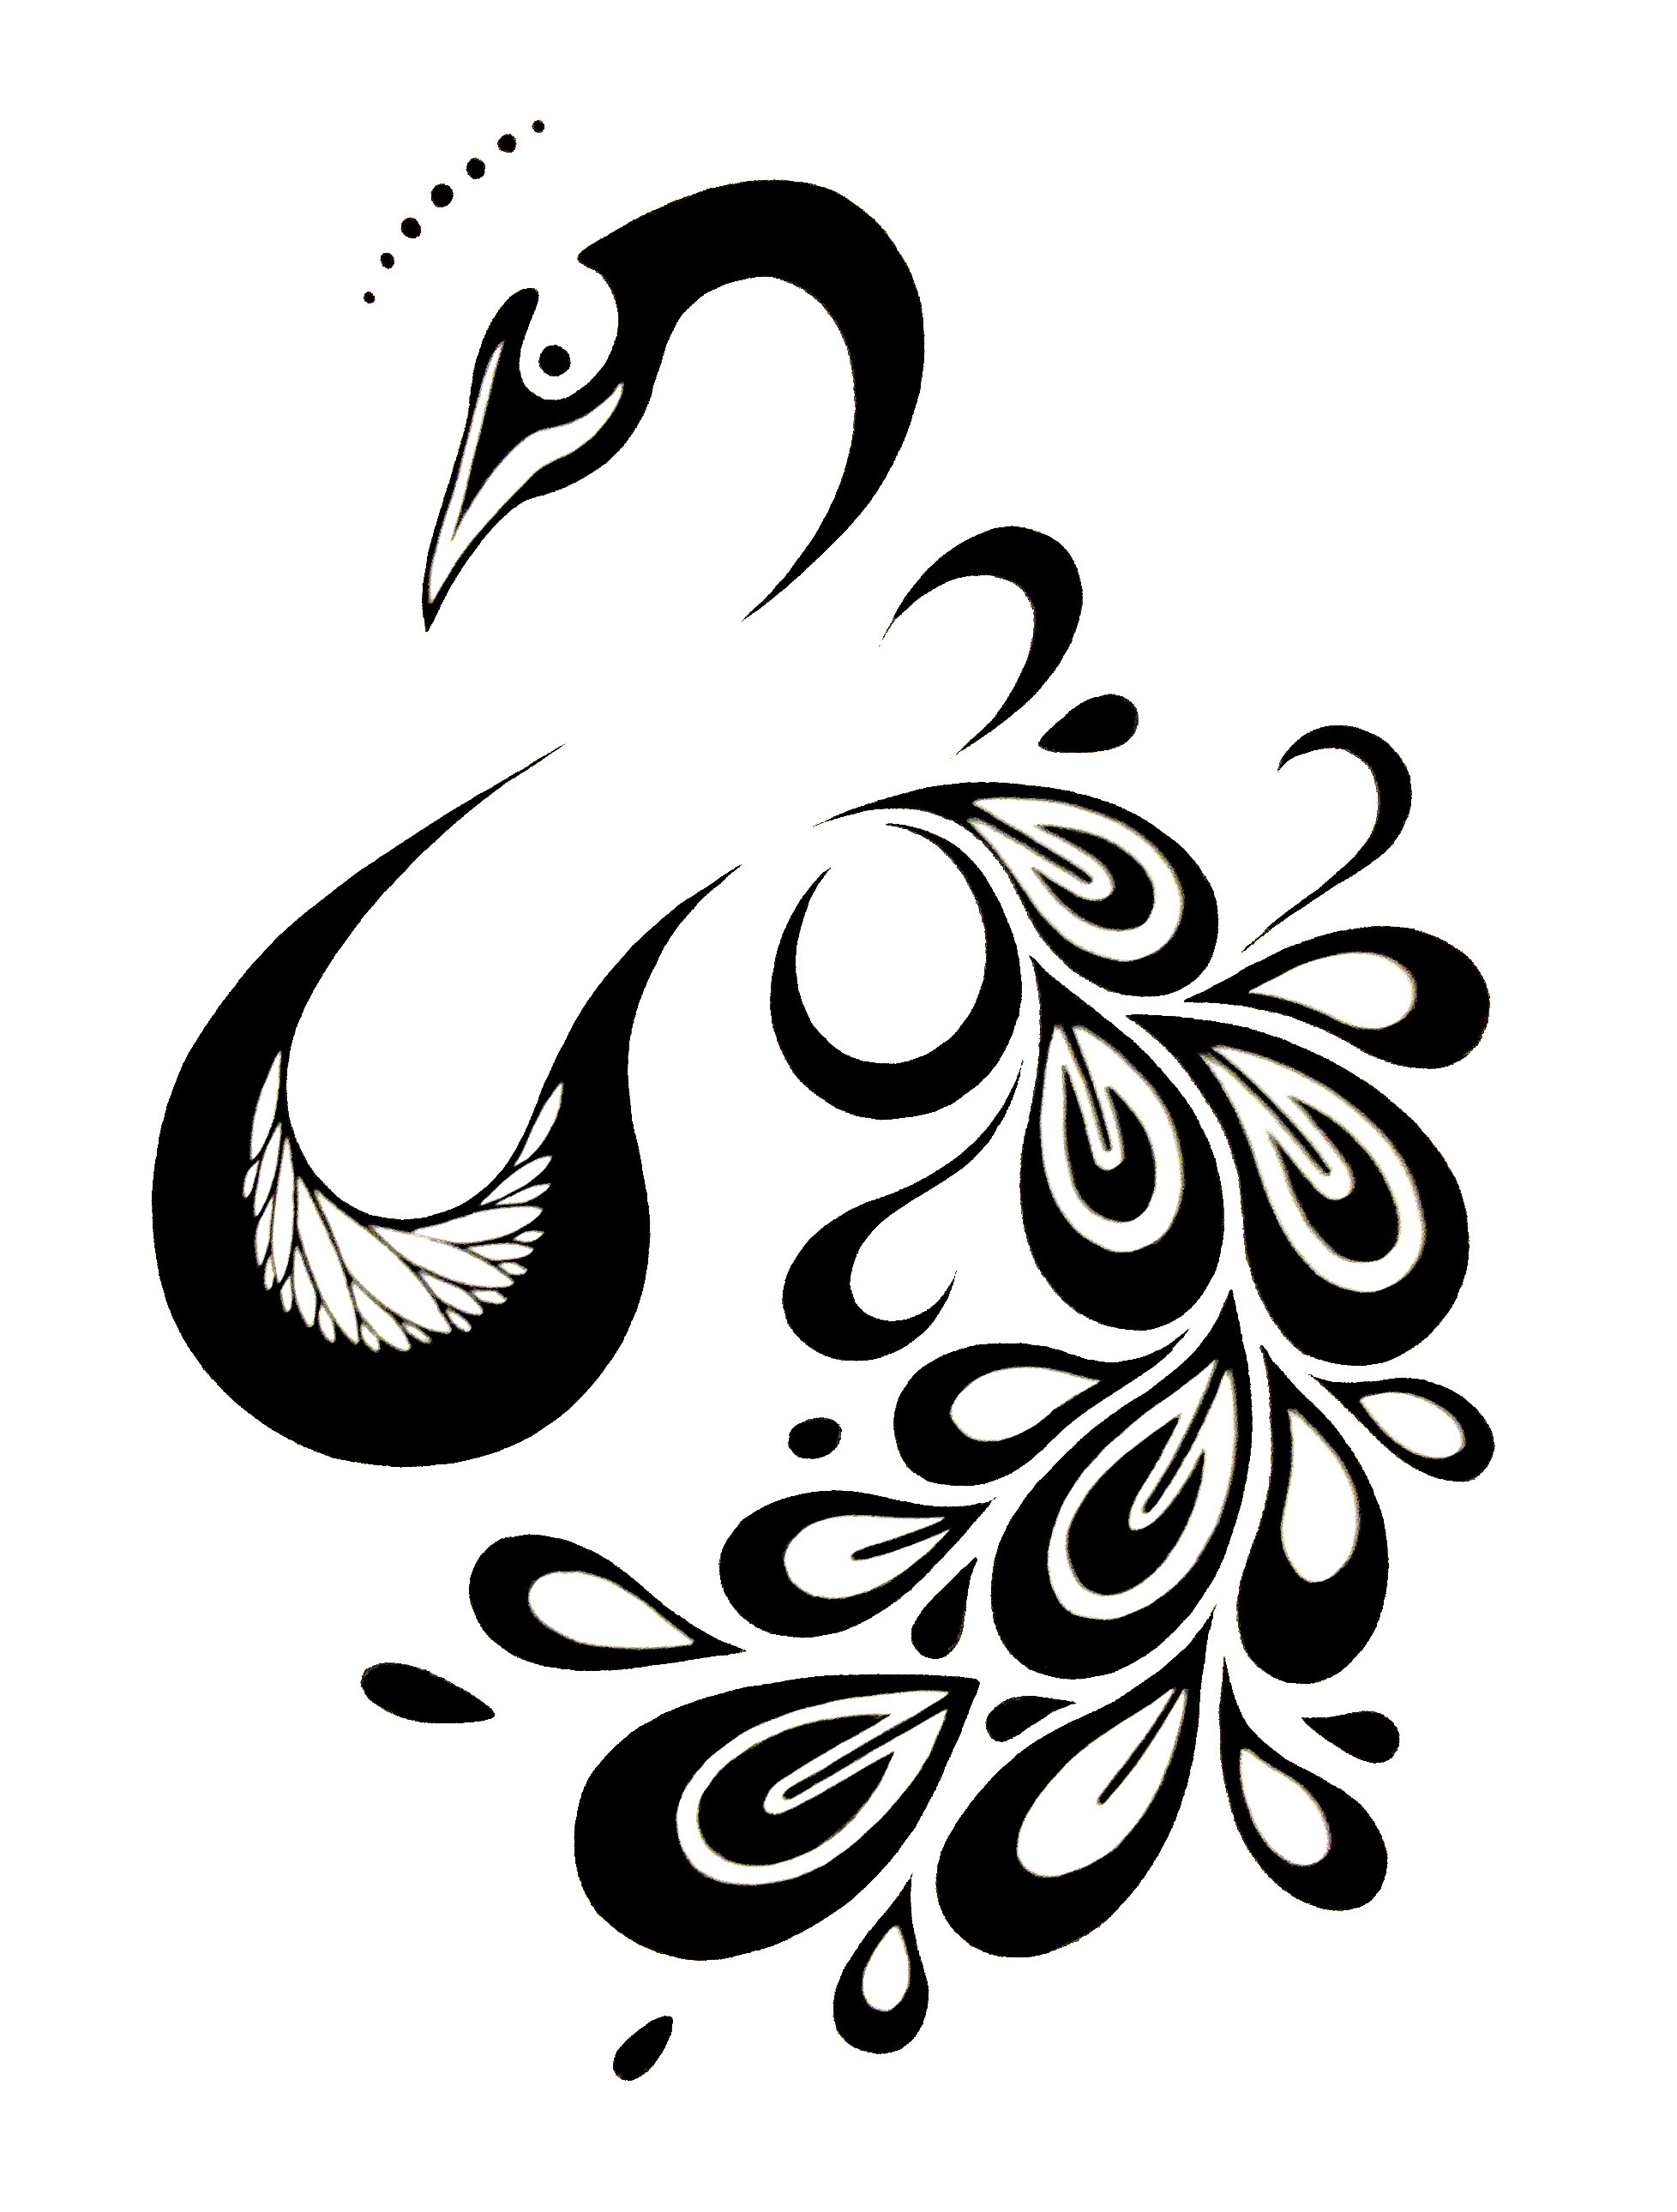 Clipart designs peacock. Free design black and